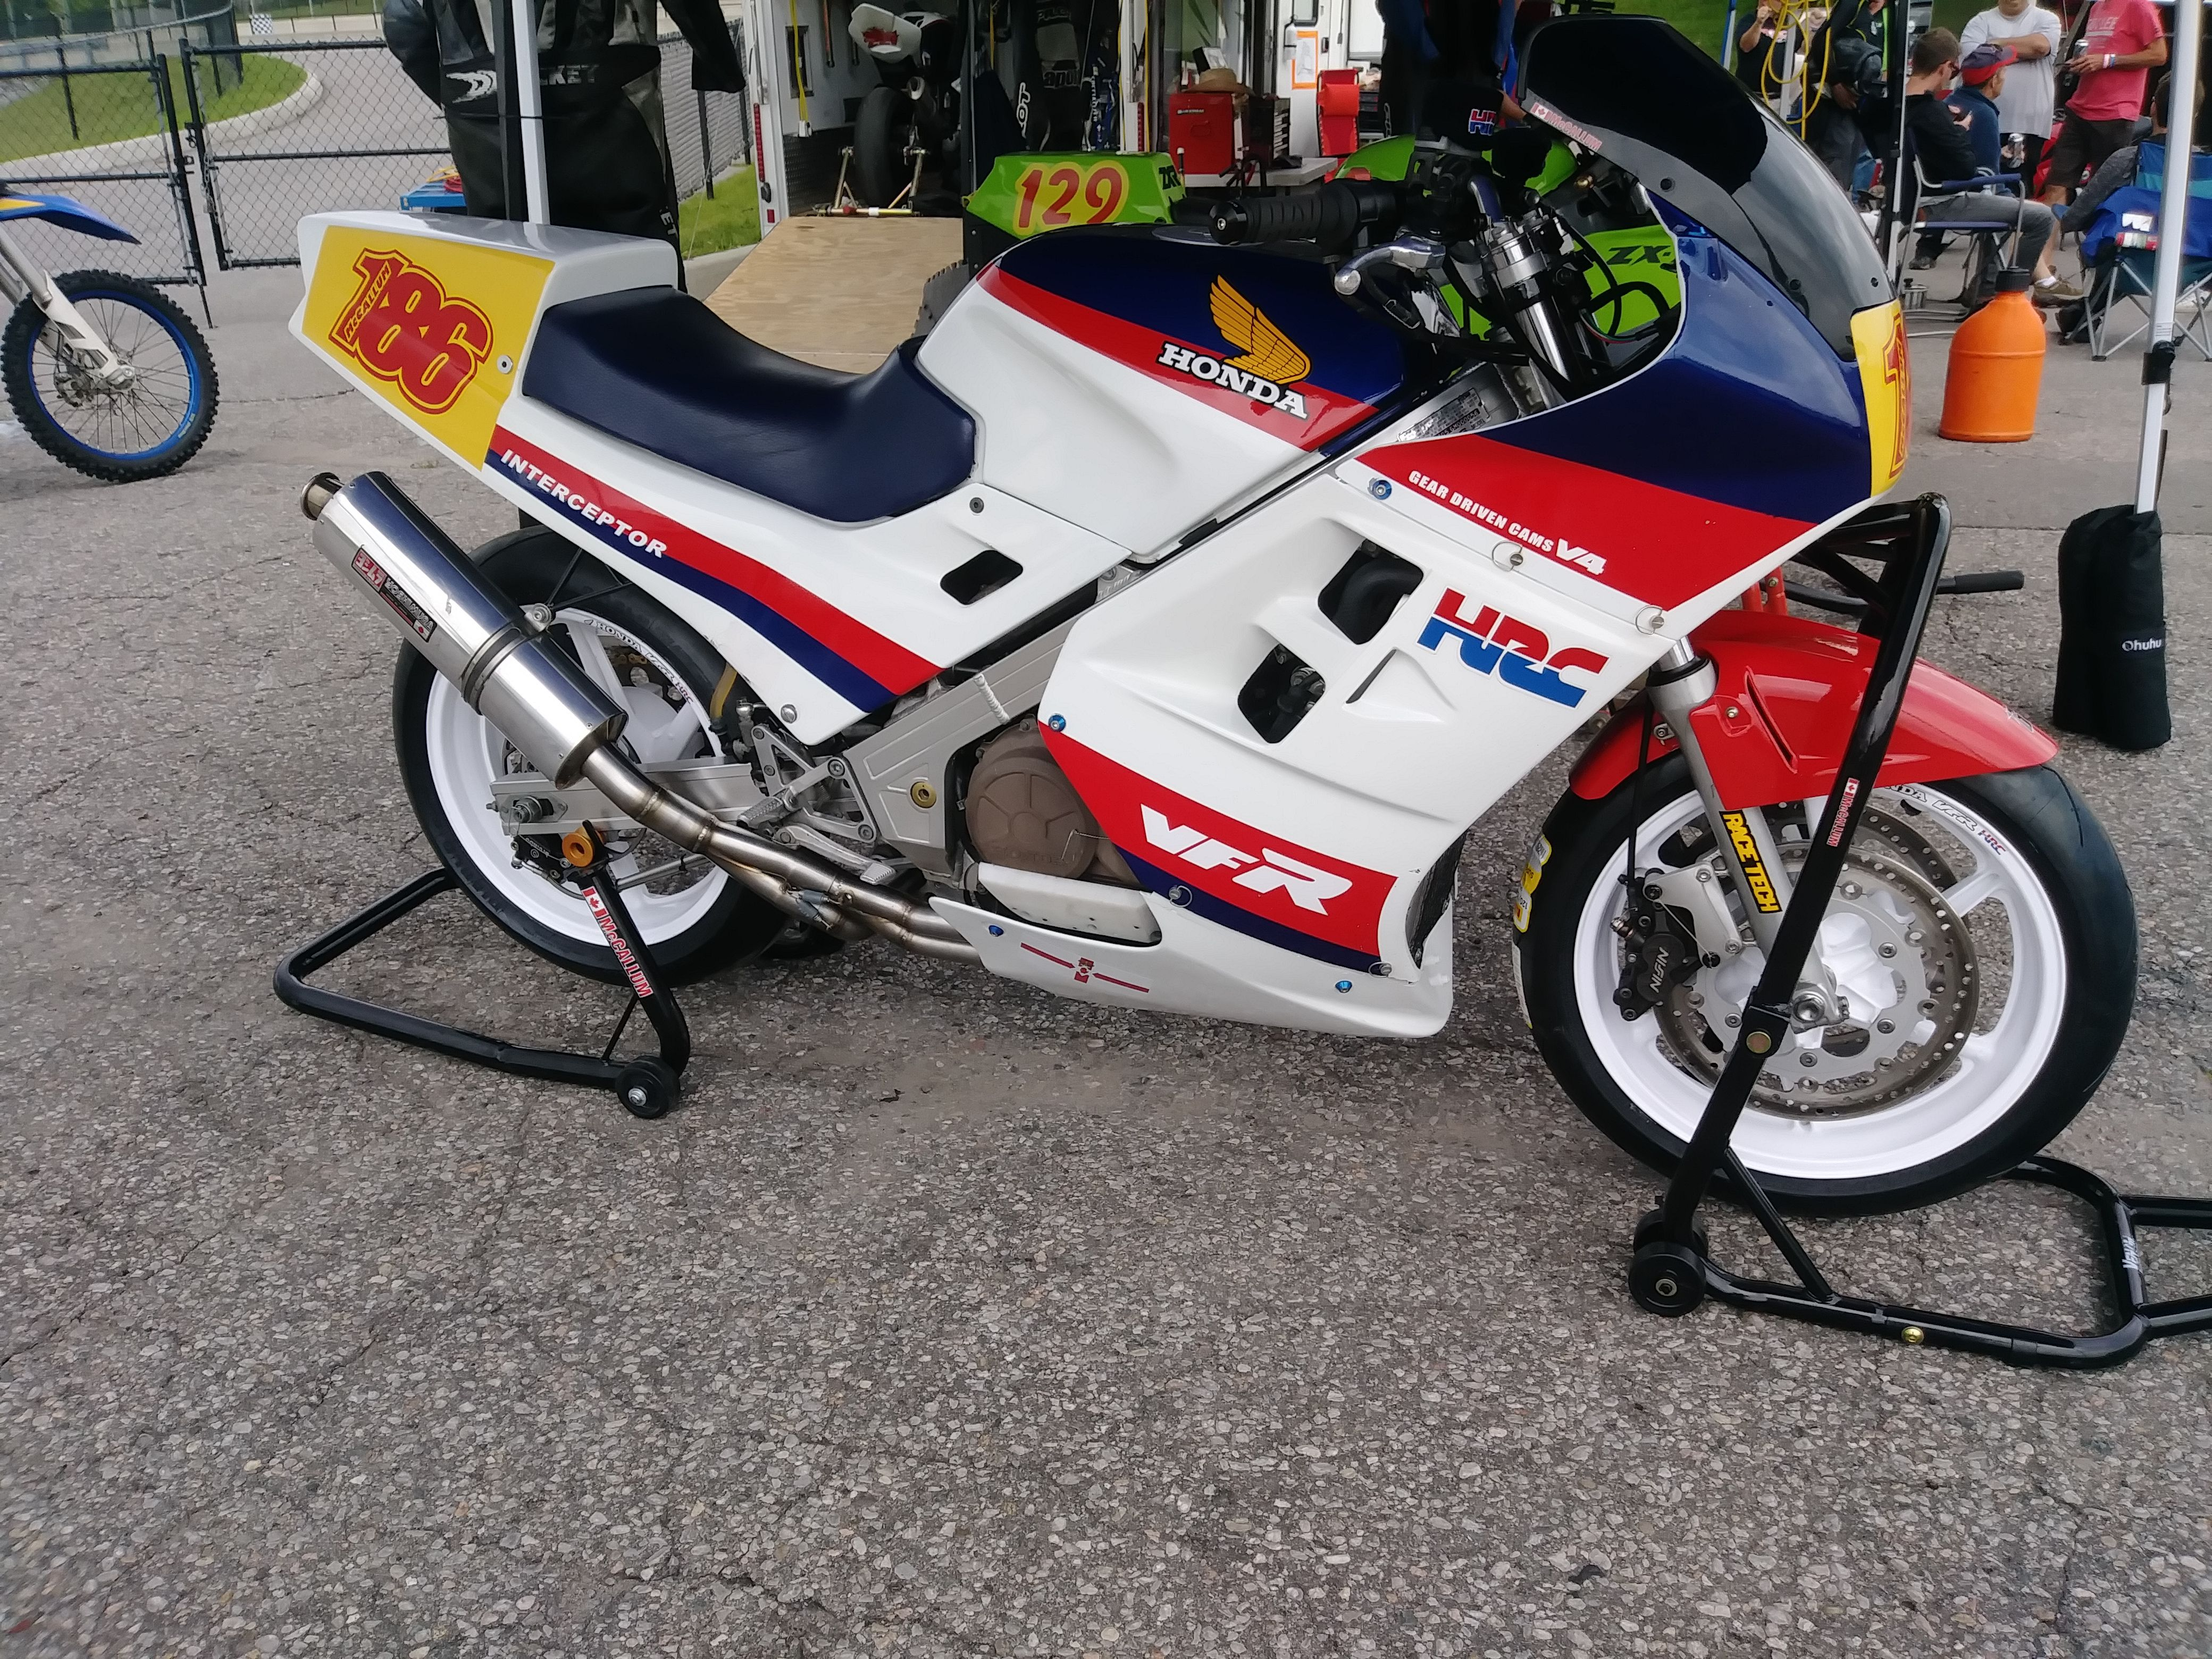 Comparing EBR 1190RX and Yamaha TZ250 V-Twin Racers   Cycle World